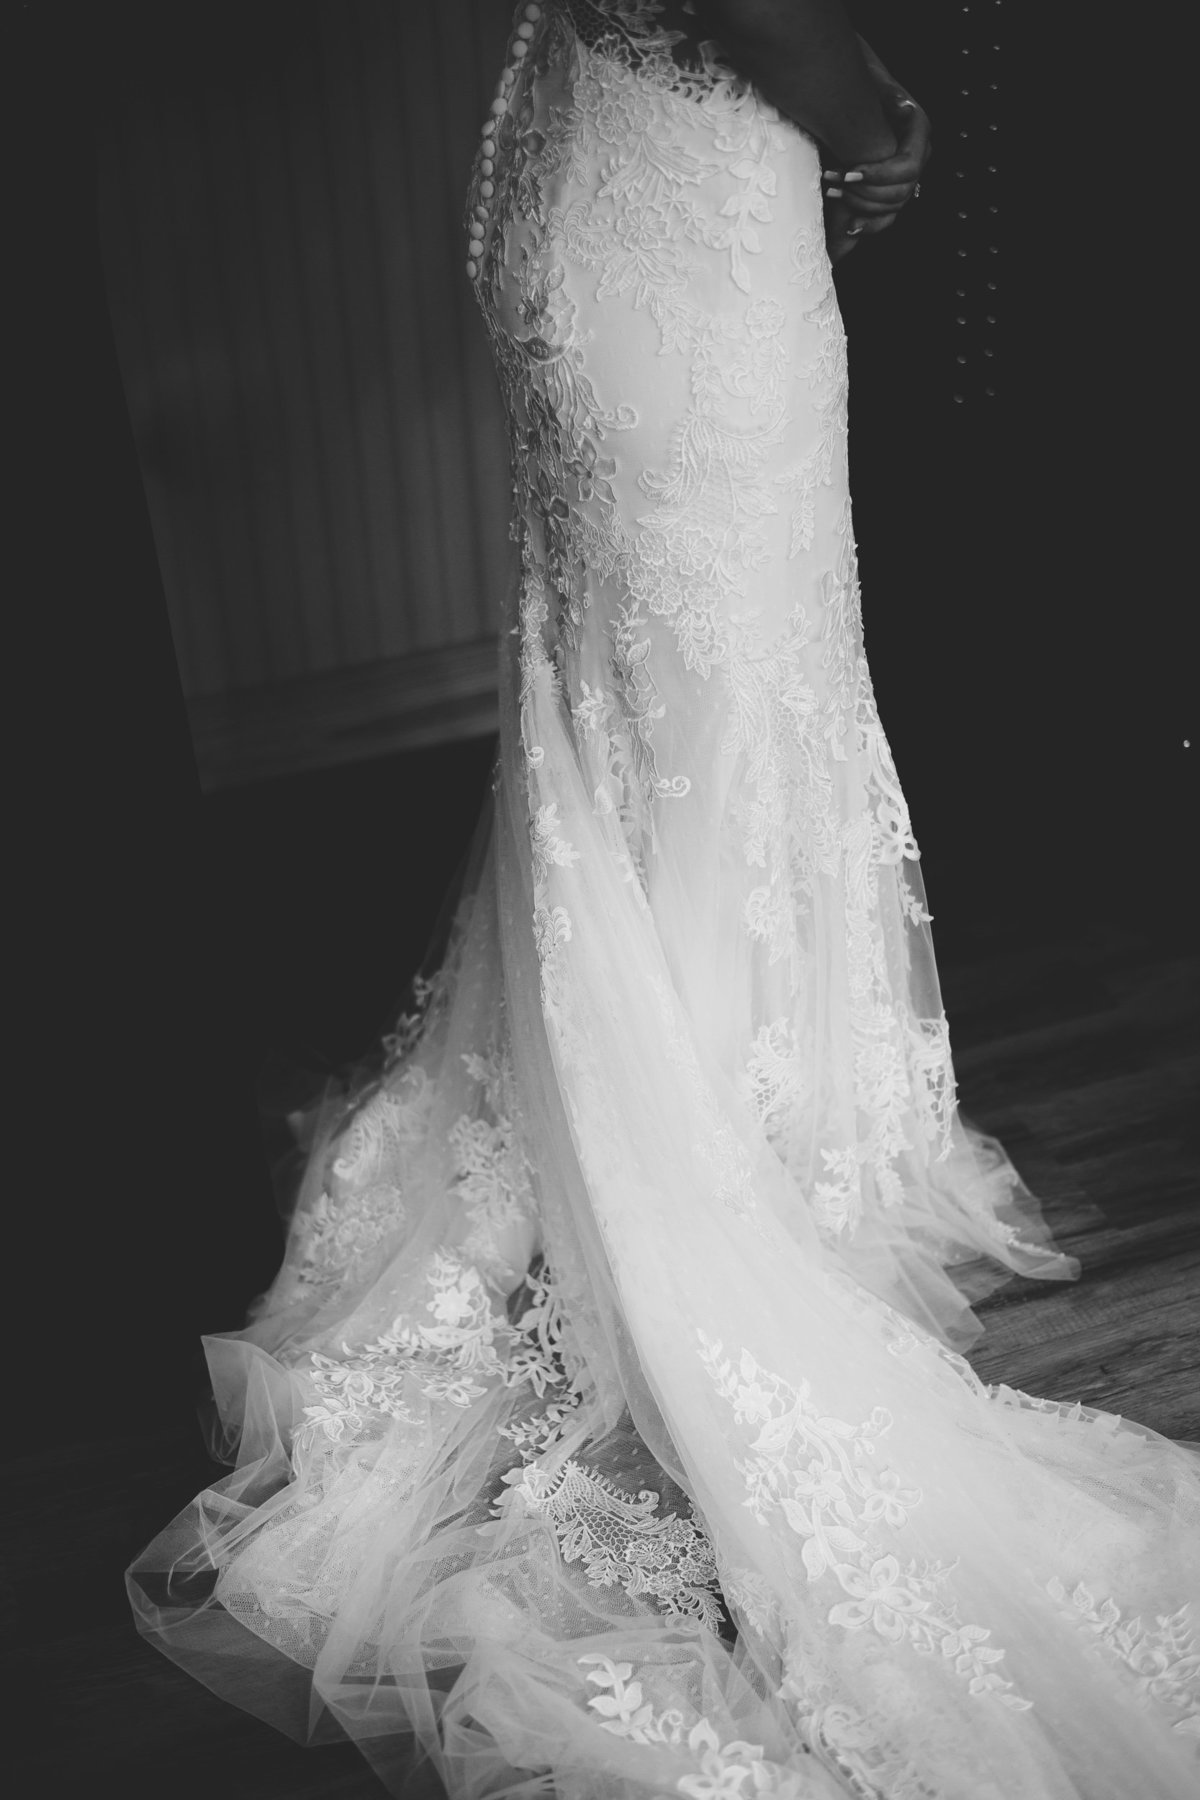 details of dress from allure bridal in gainesville, florida